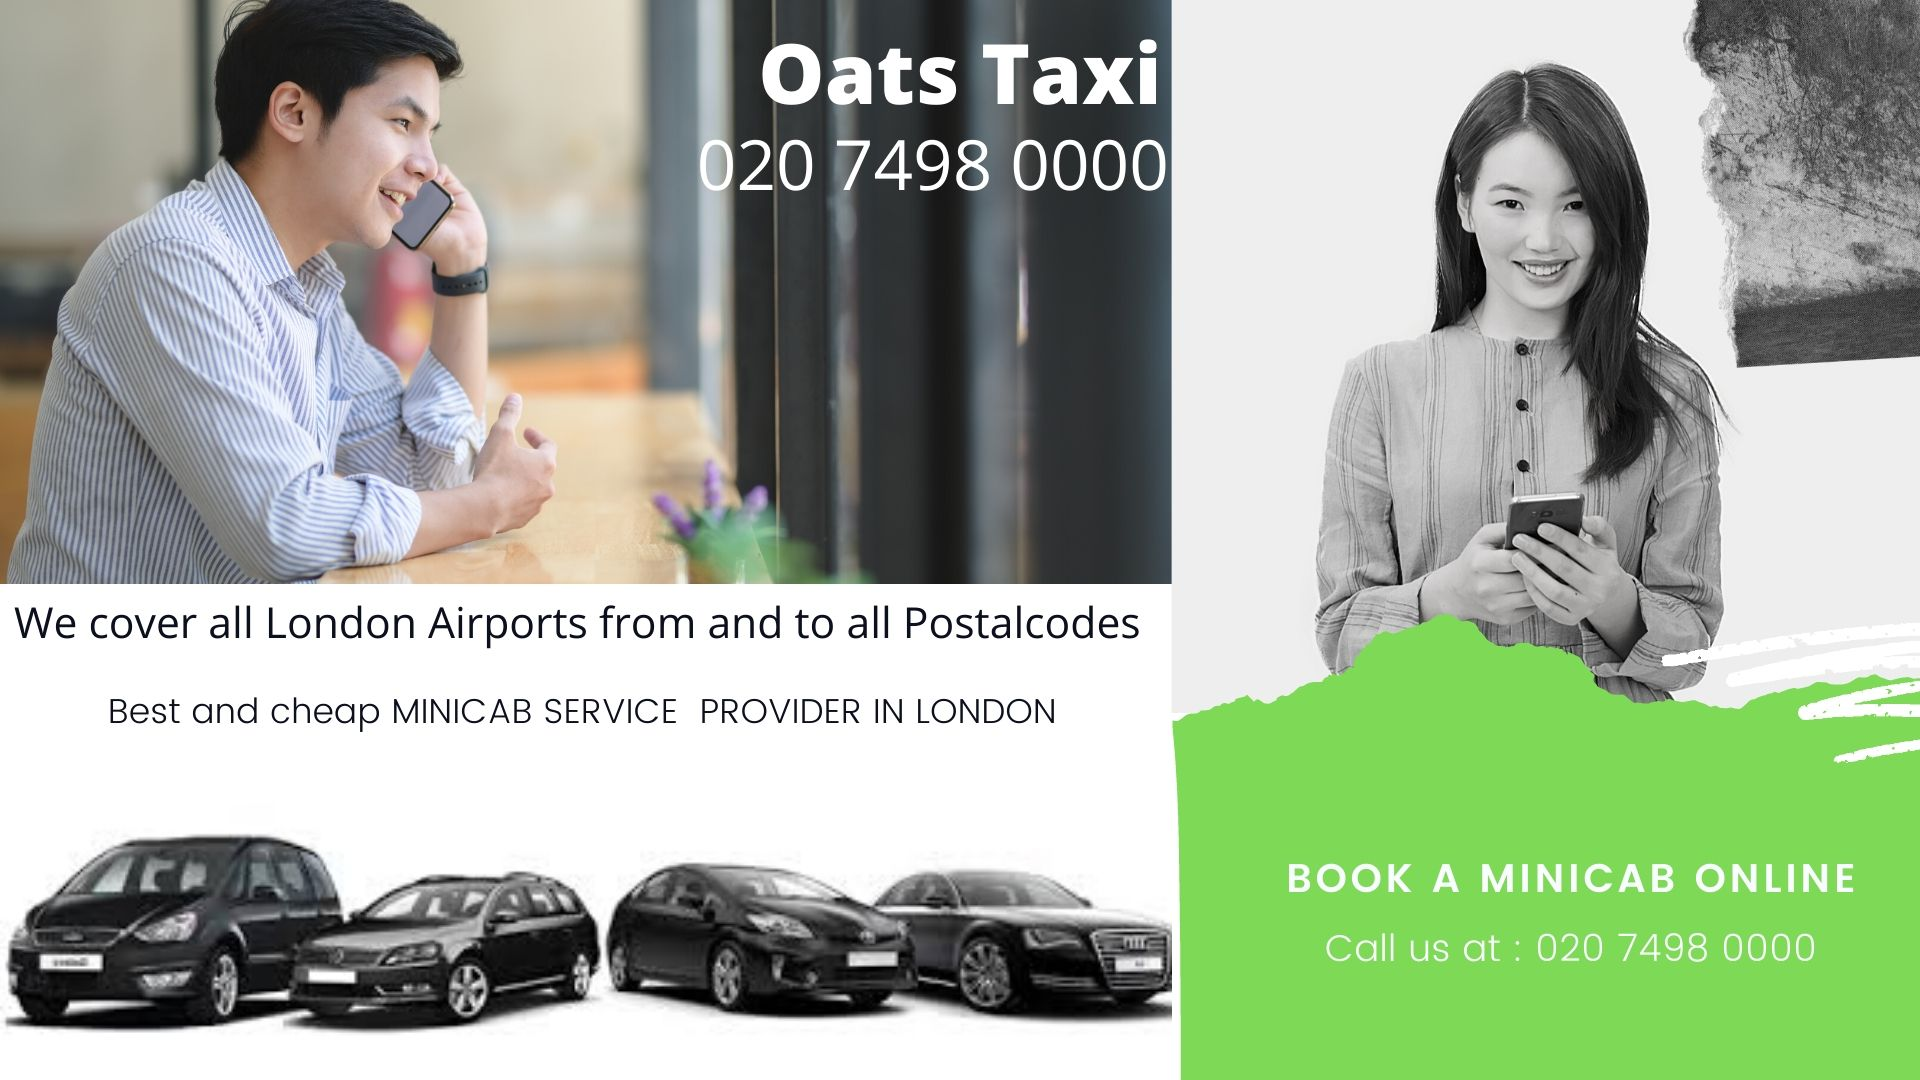 Taxi Office Near AUDLEY CLOSE, Battersea SW11, Taxi From Battersea SW11 To Gatwick Airport